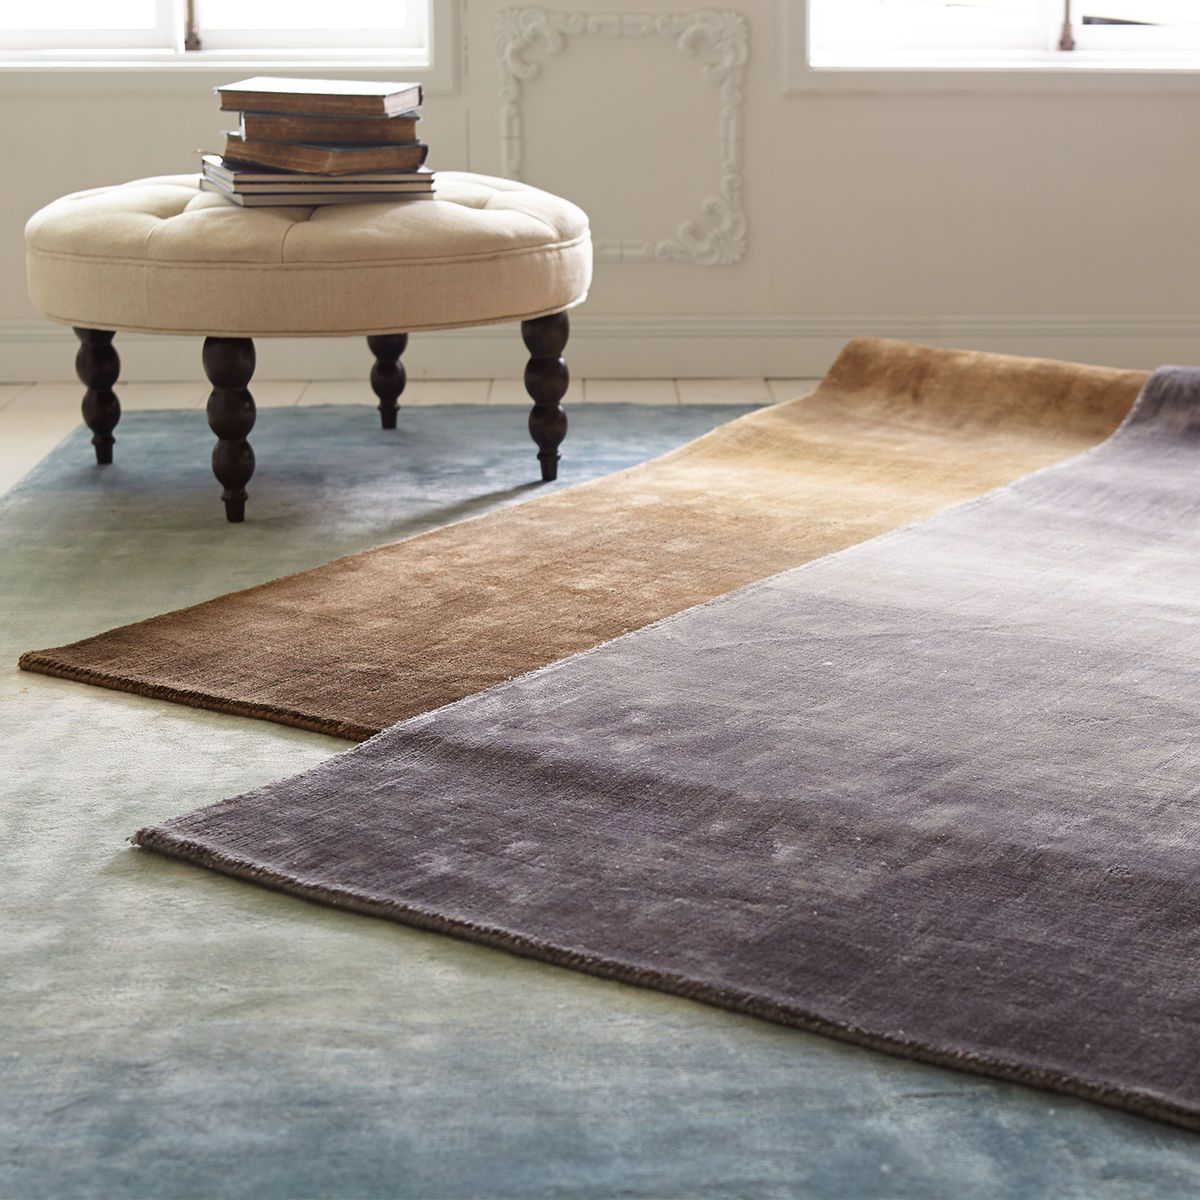 pier 1 living room rugs%0A Luxe Ombre Rugs  viscose  Pier   Imports  Canada